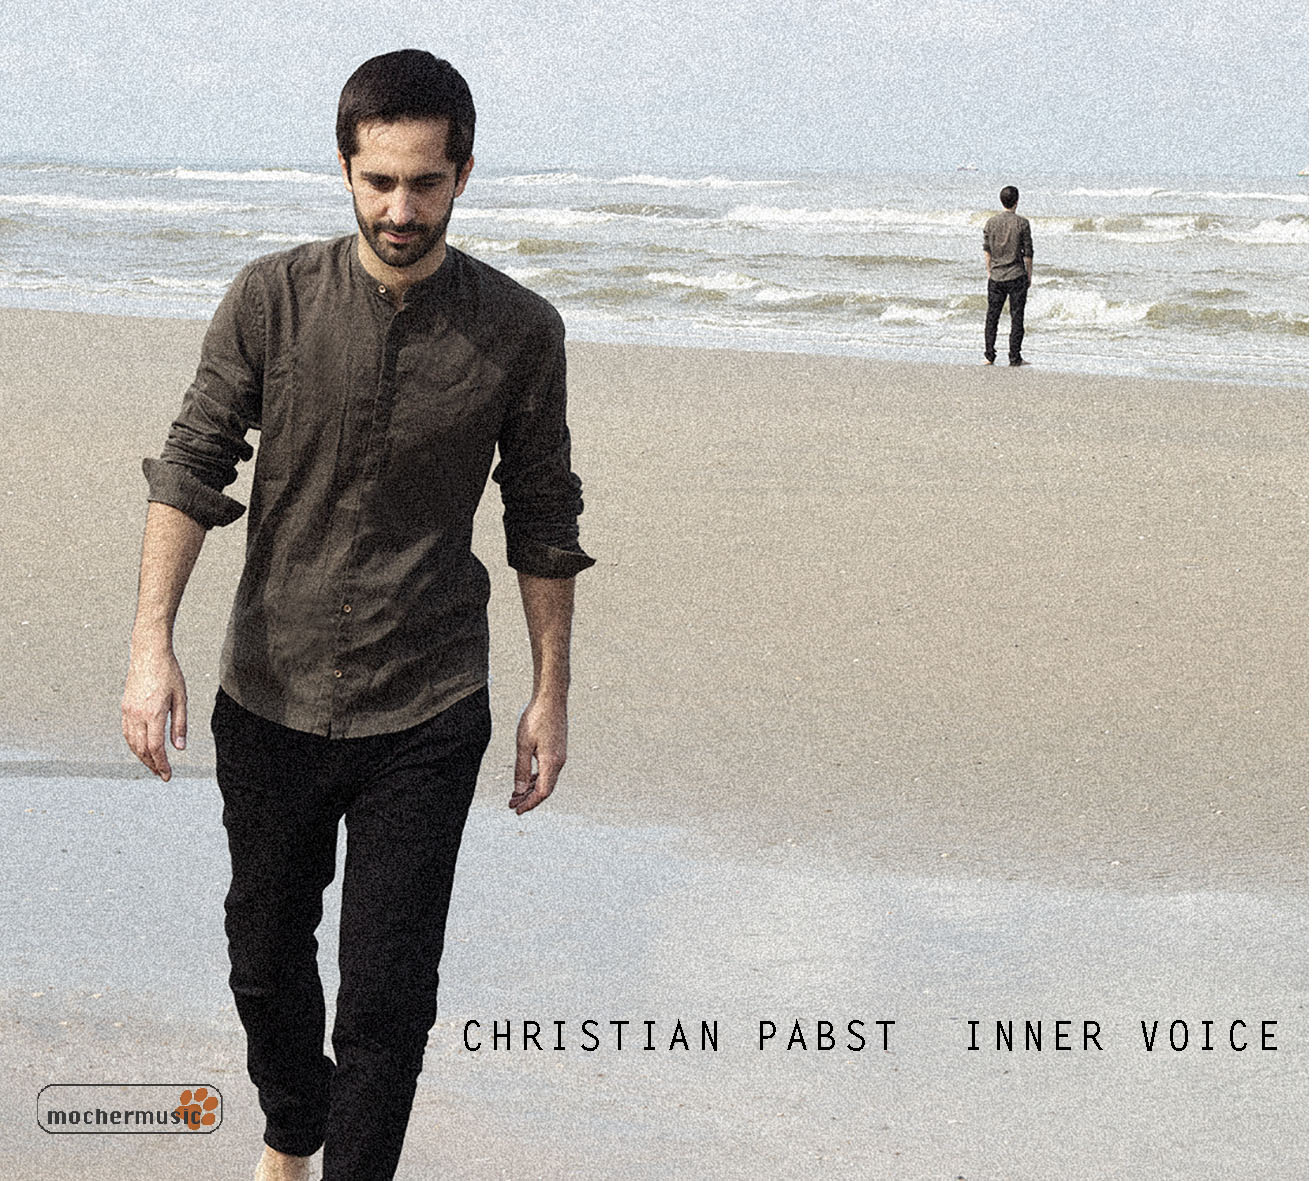 Christian Pabst Inner Voice Christian Pabst Trio